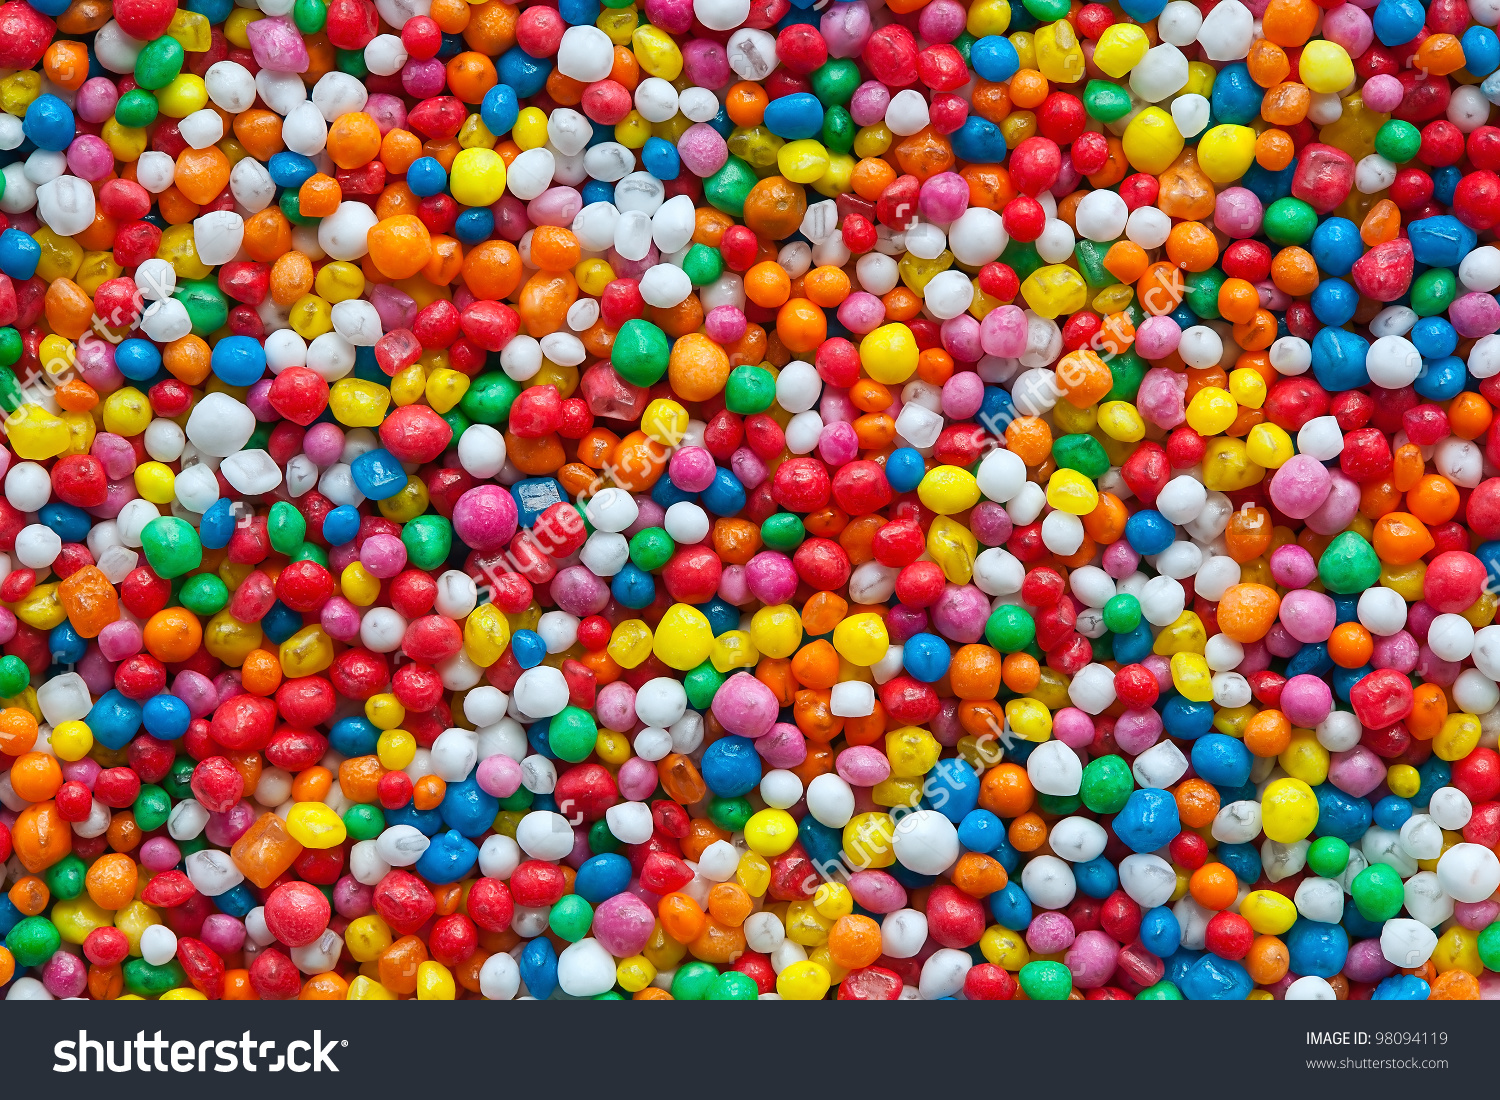 Candy Sprinkles Fullframe Background Colorful Hundreds Stock Photo.